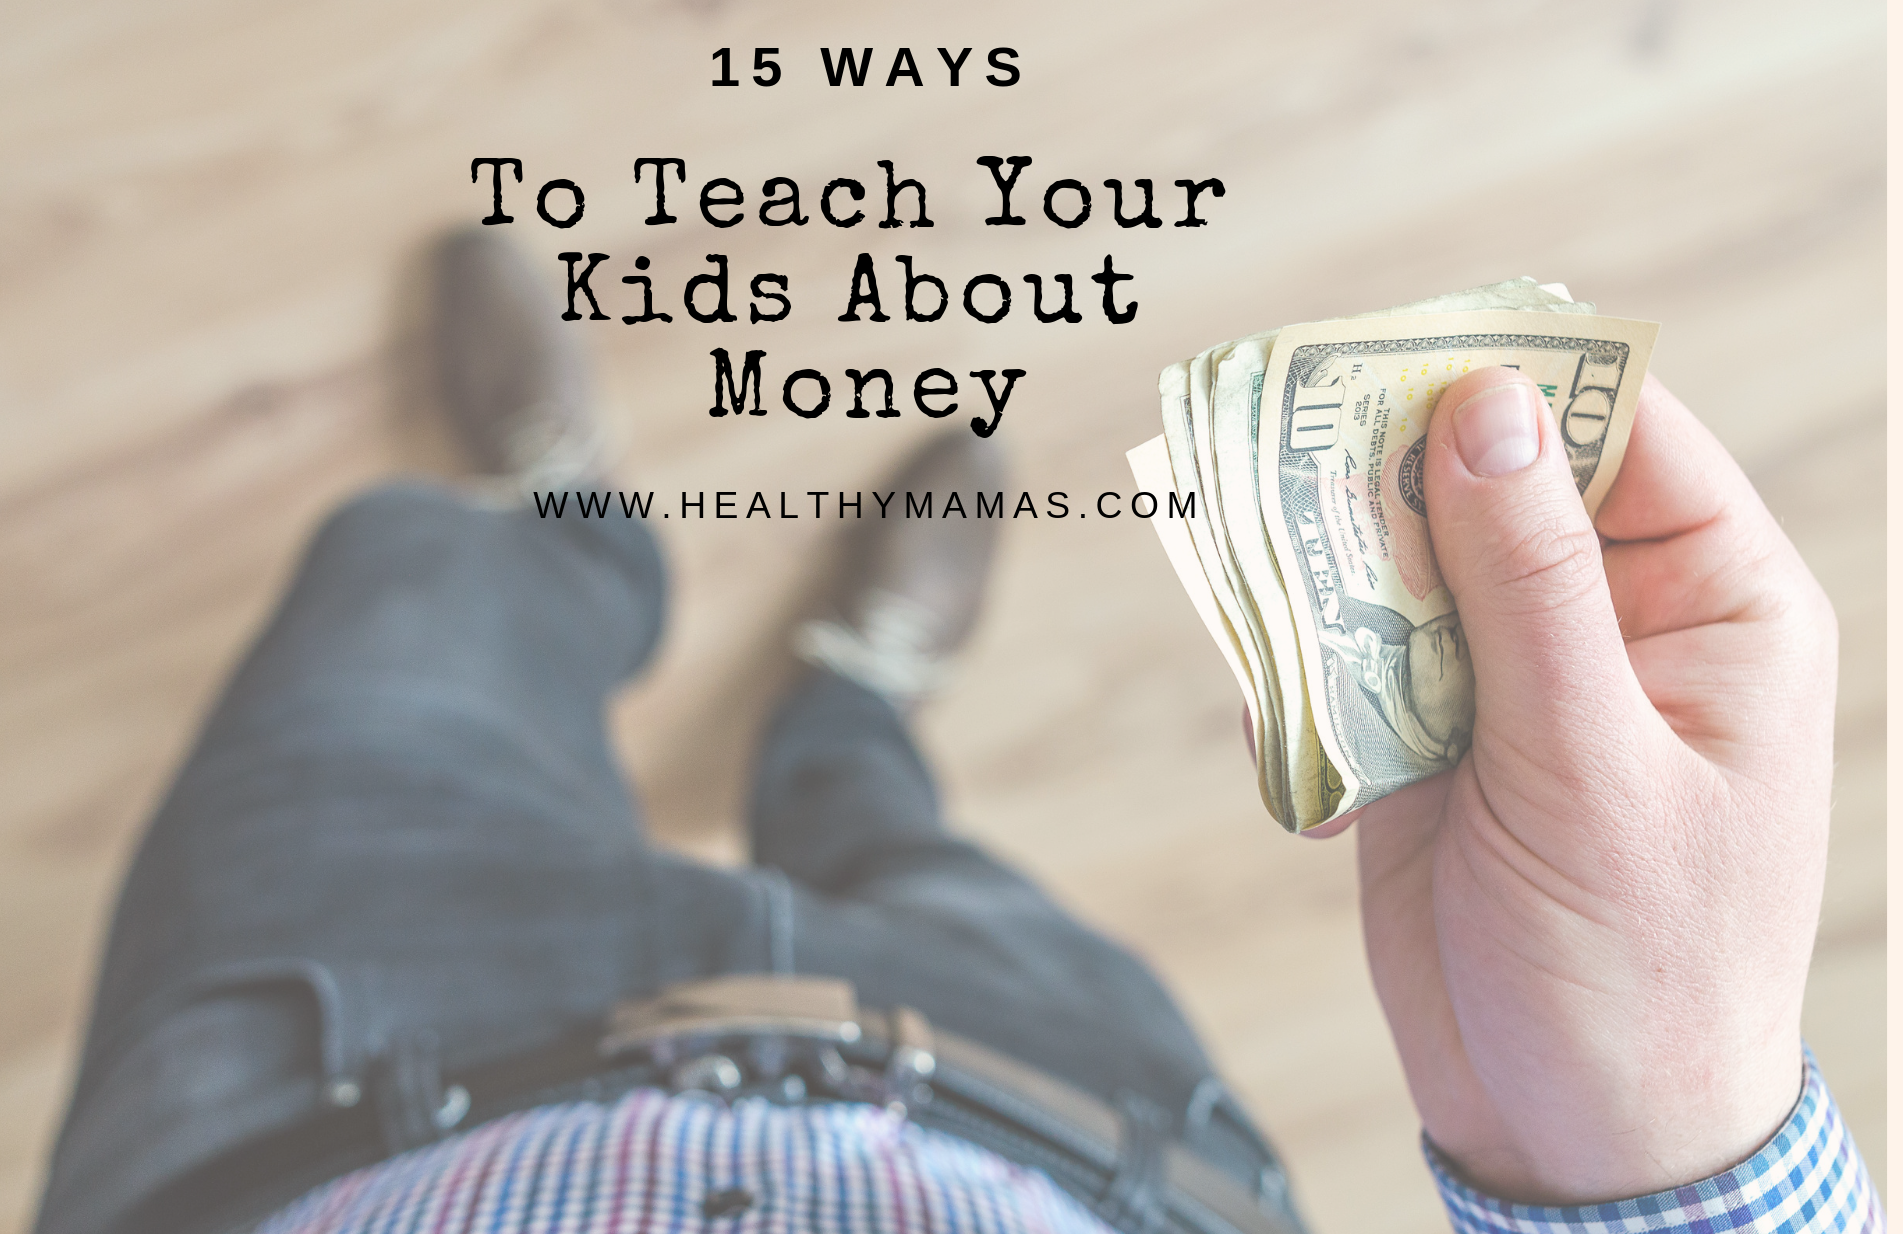 15 Ways to Teach Kids About Money at Any Age